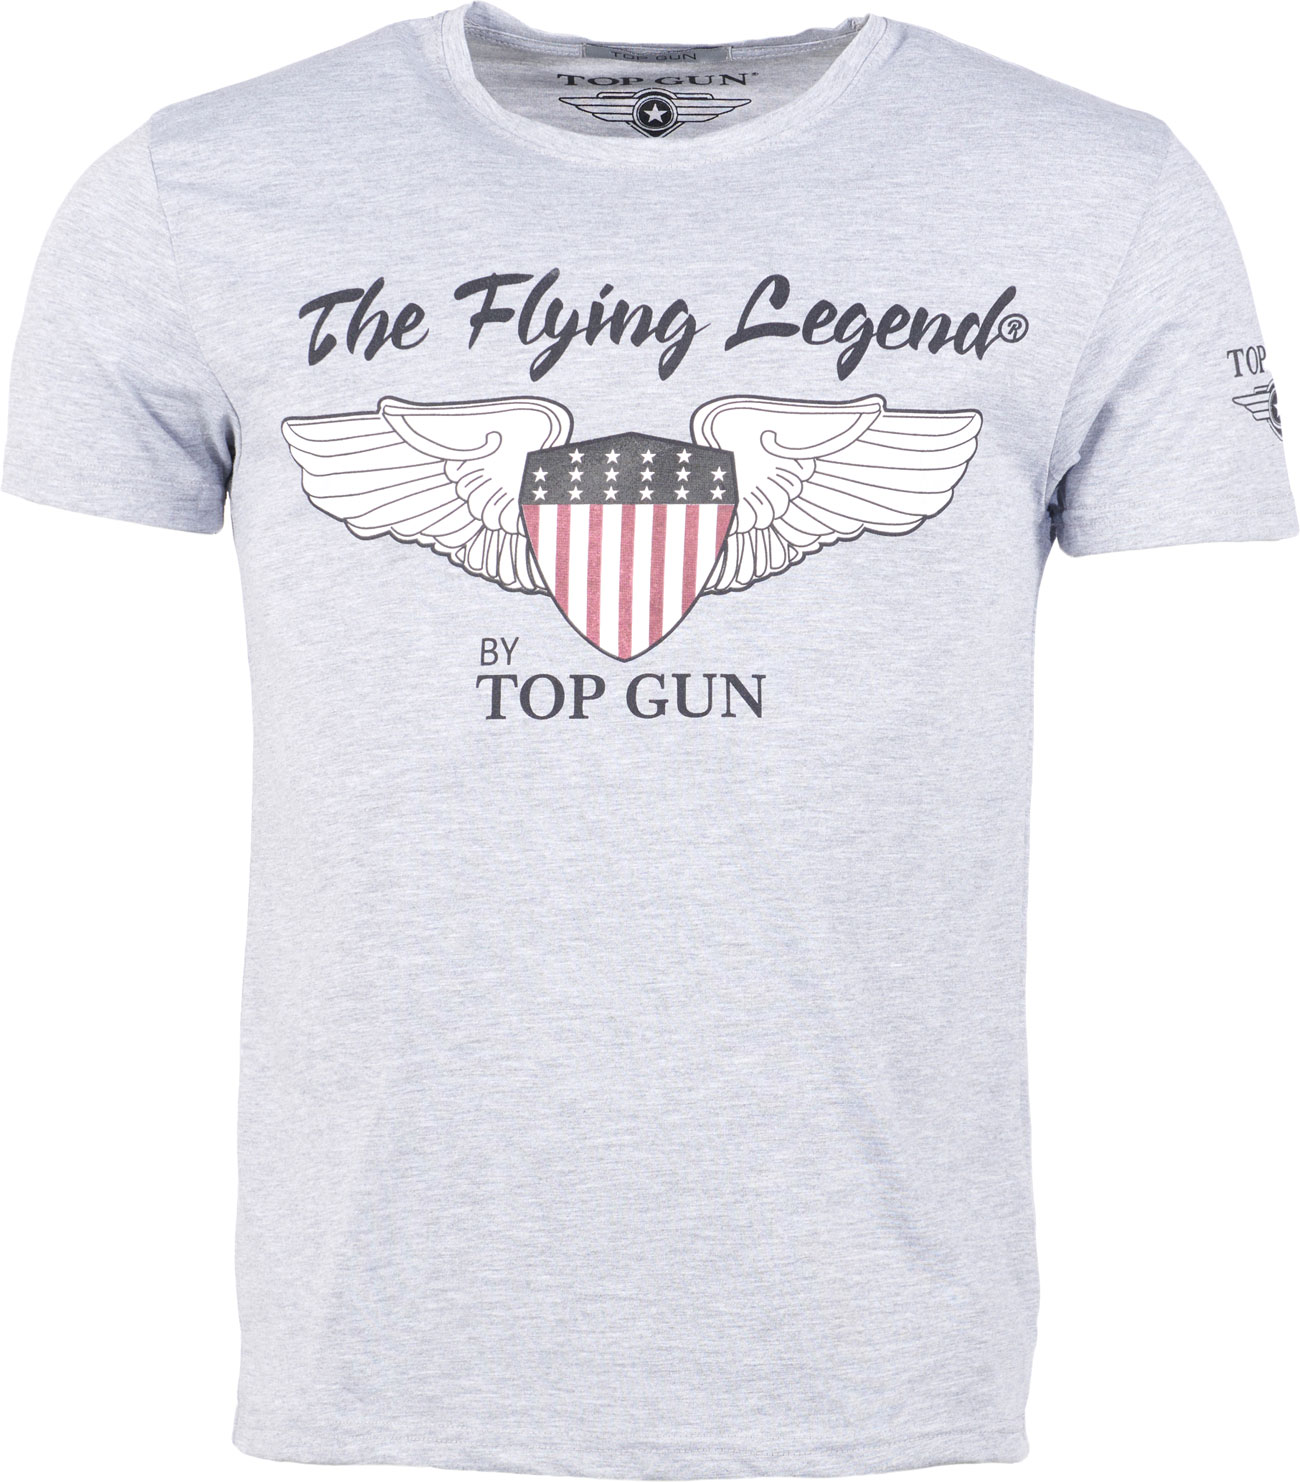 Top Gun Gamestop, T-Shirt - Grau - XL 310-TG2019-1030-1535-XL